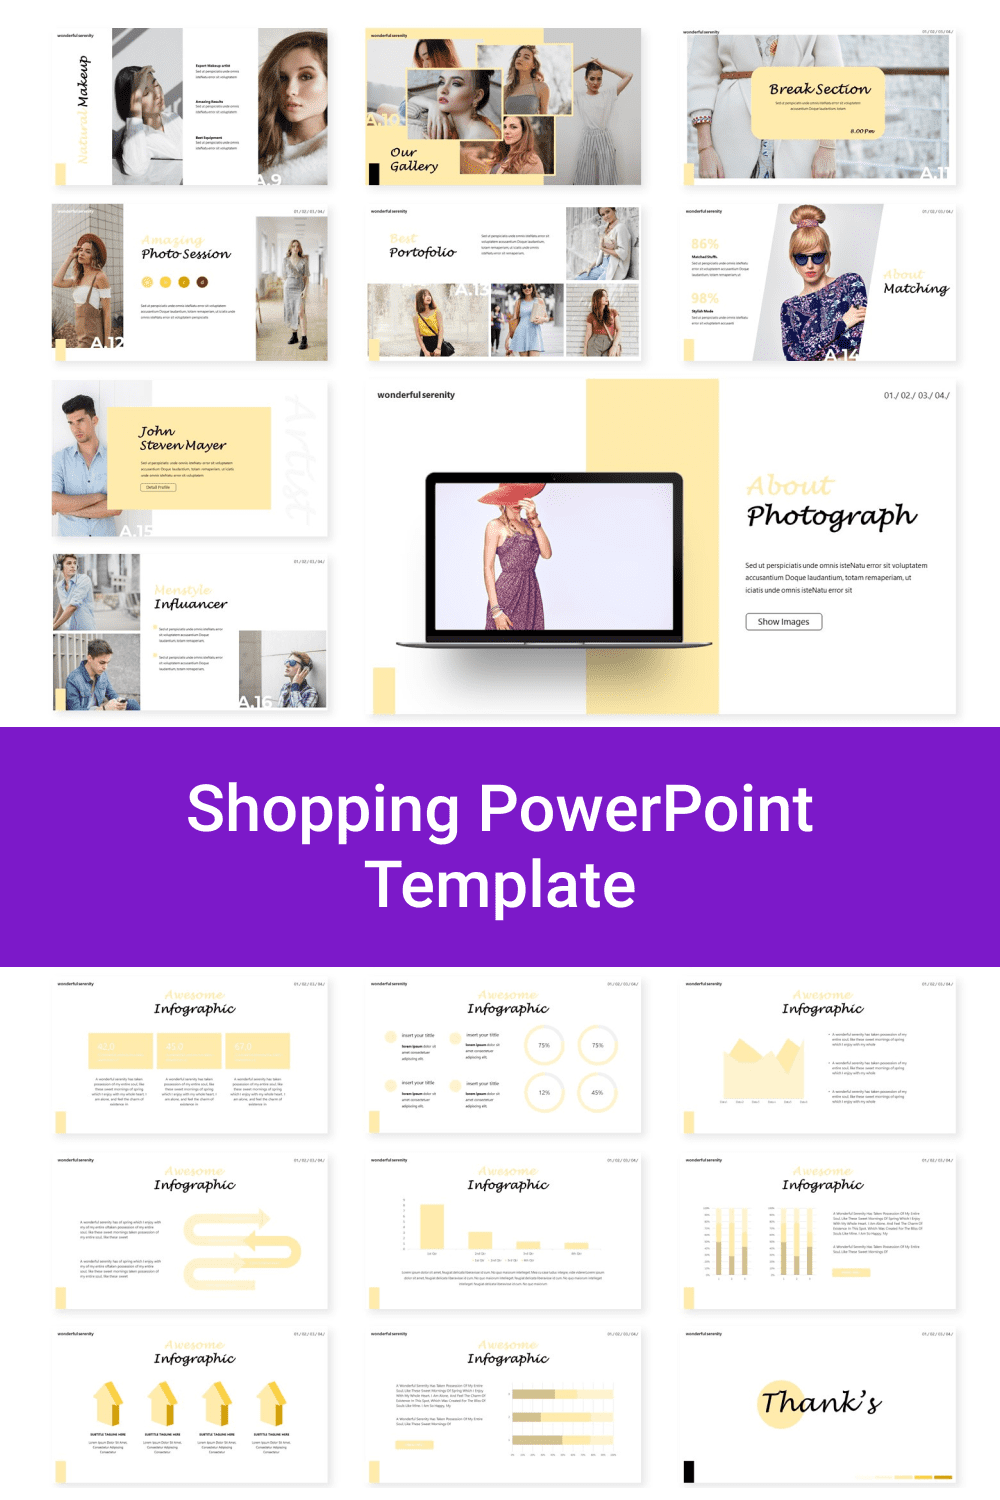 Shopping PowerPoint Template.